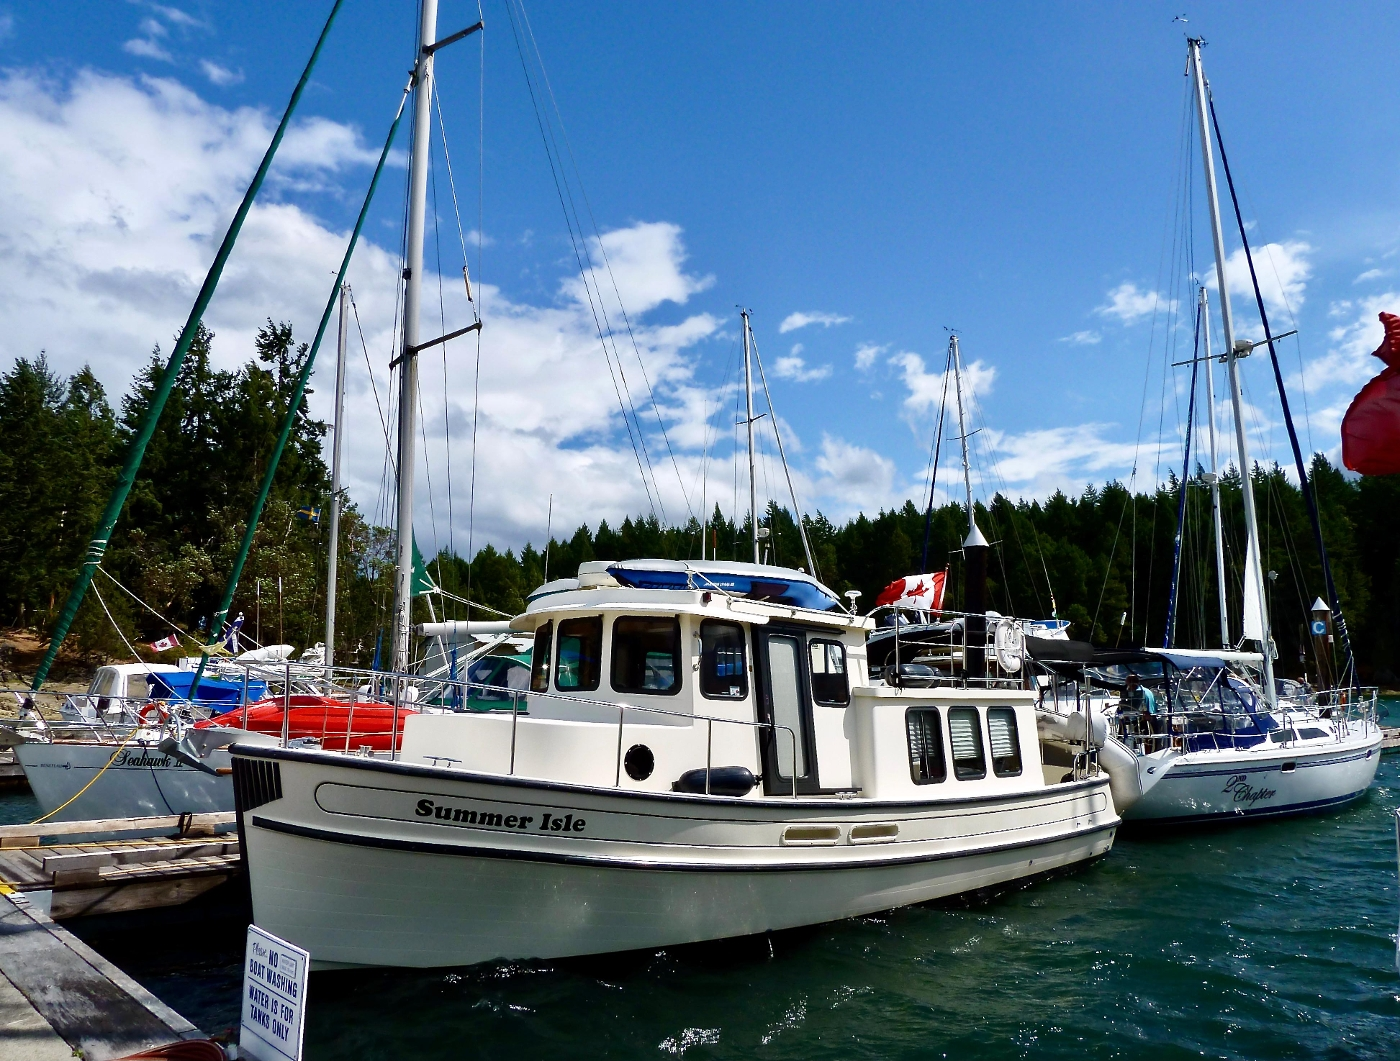 2001 Nordic Tugs 32 Pilothouse, Telegraph Harbour, Gulf Islands